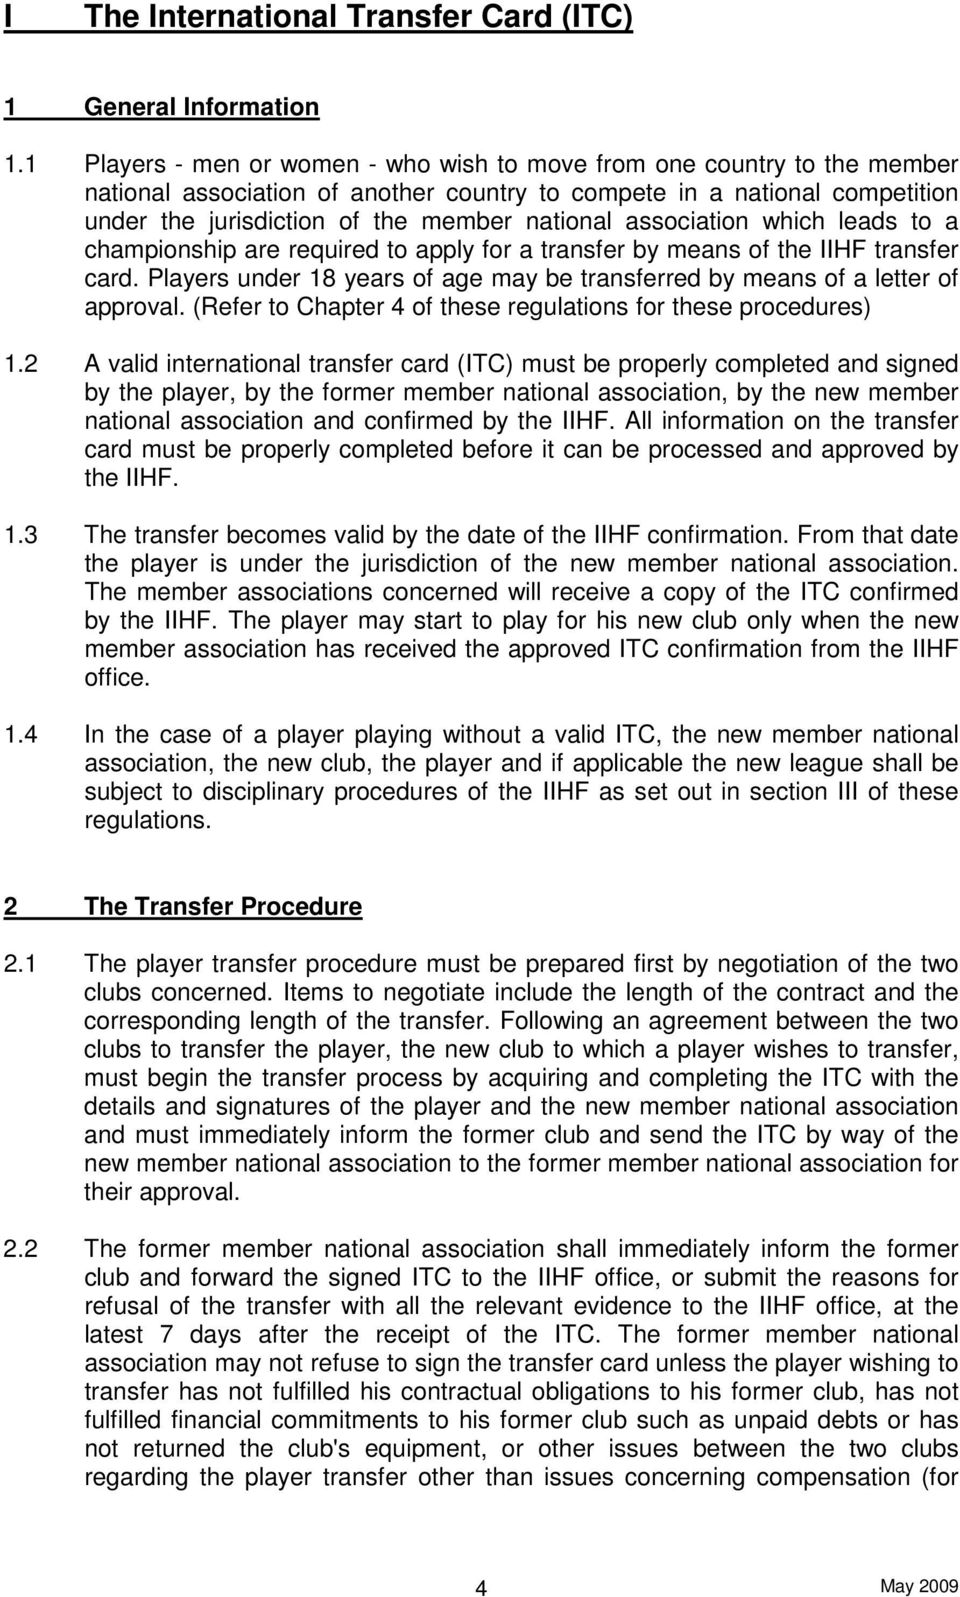 association which leads to a championship are required to apply for a transfer by means of the IIHF transfer card. Players under 18 years of age may be transferred by means of a letter of approval.